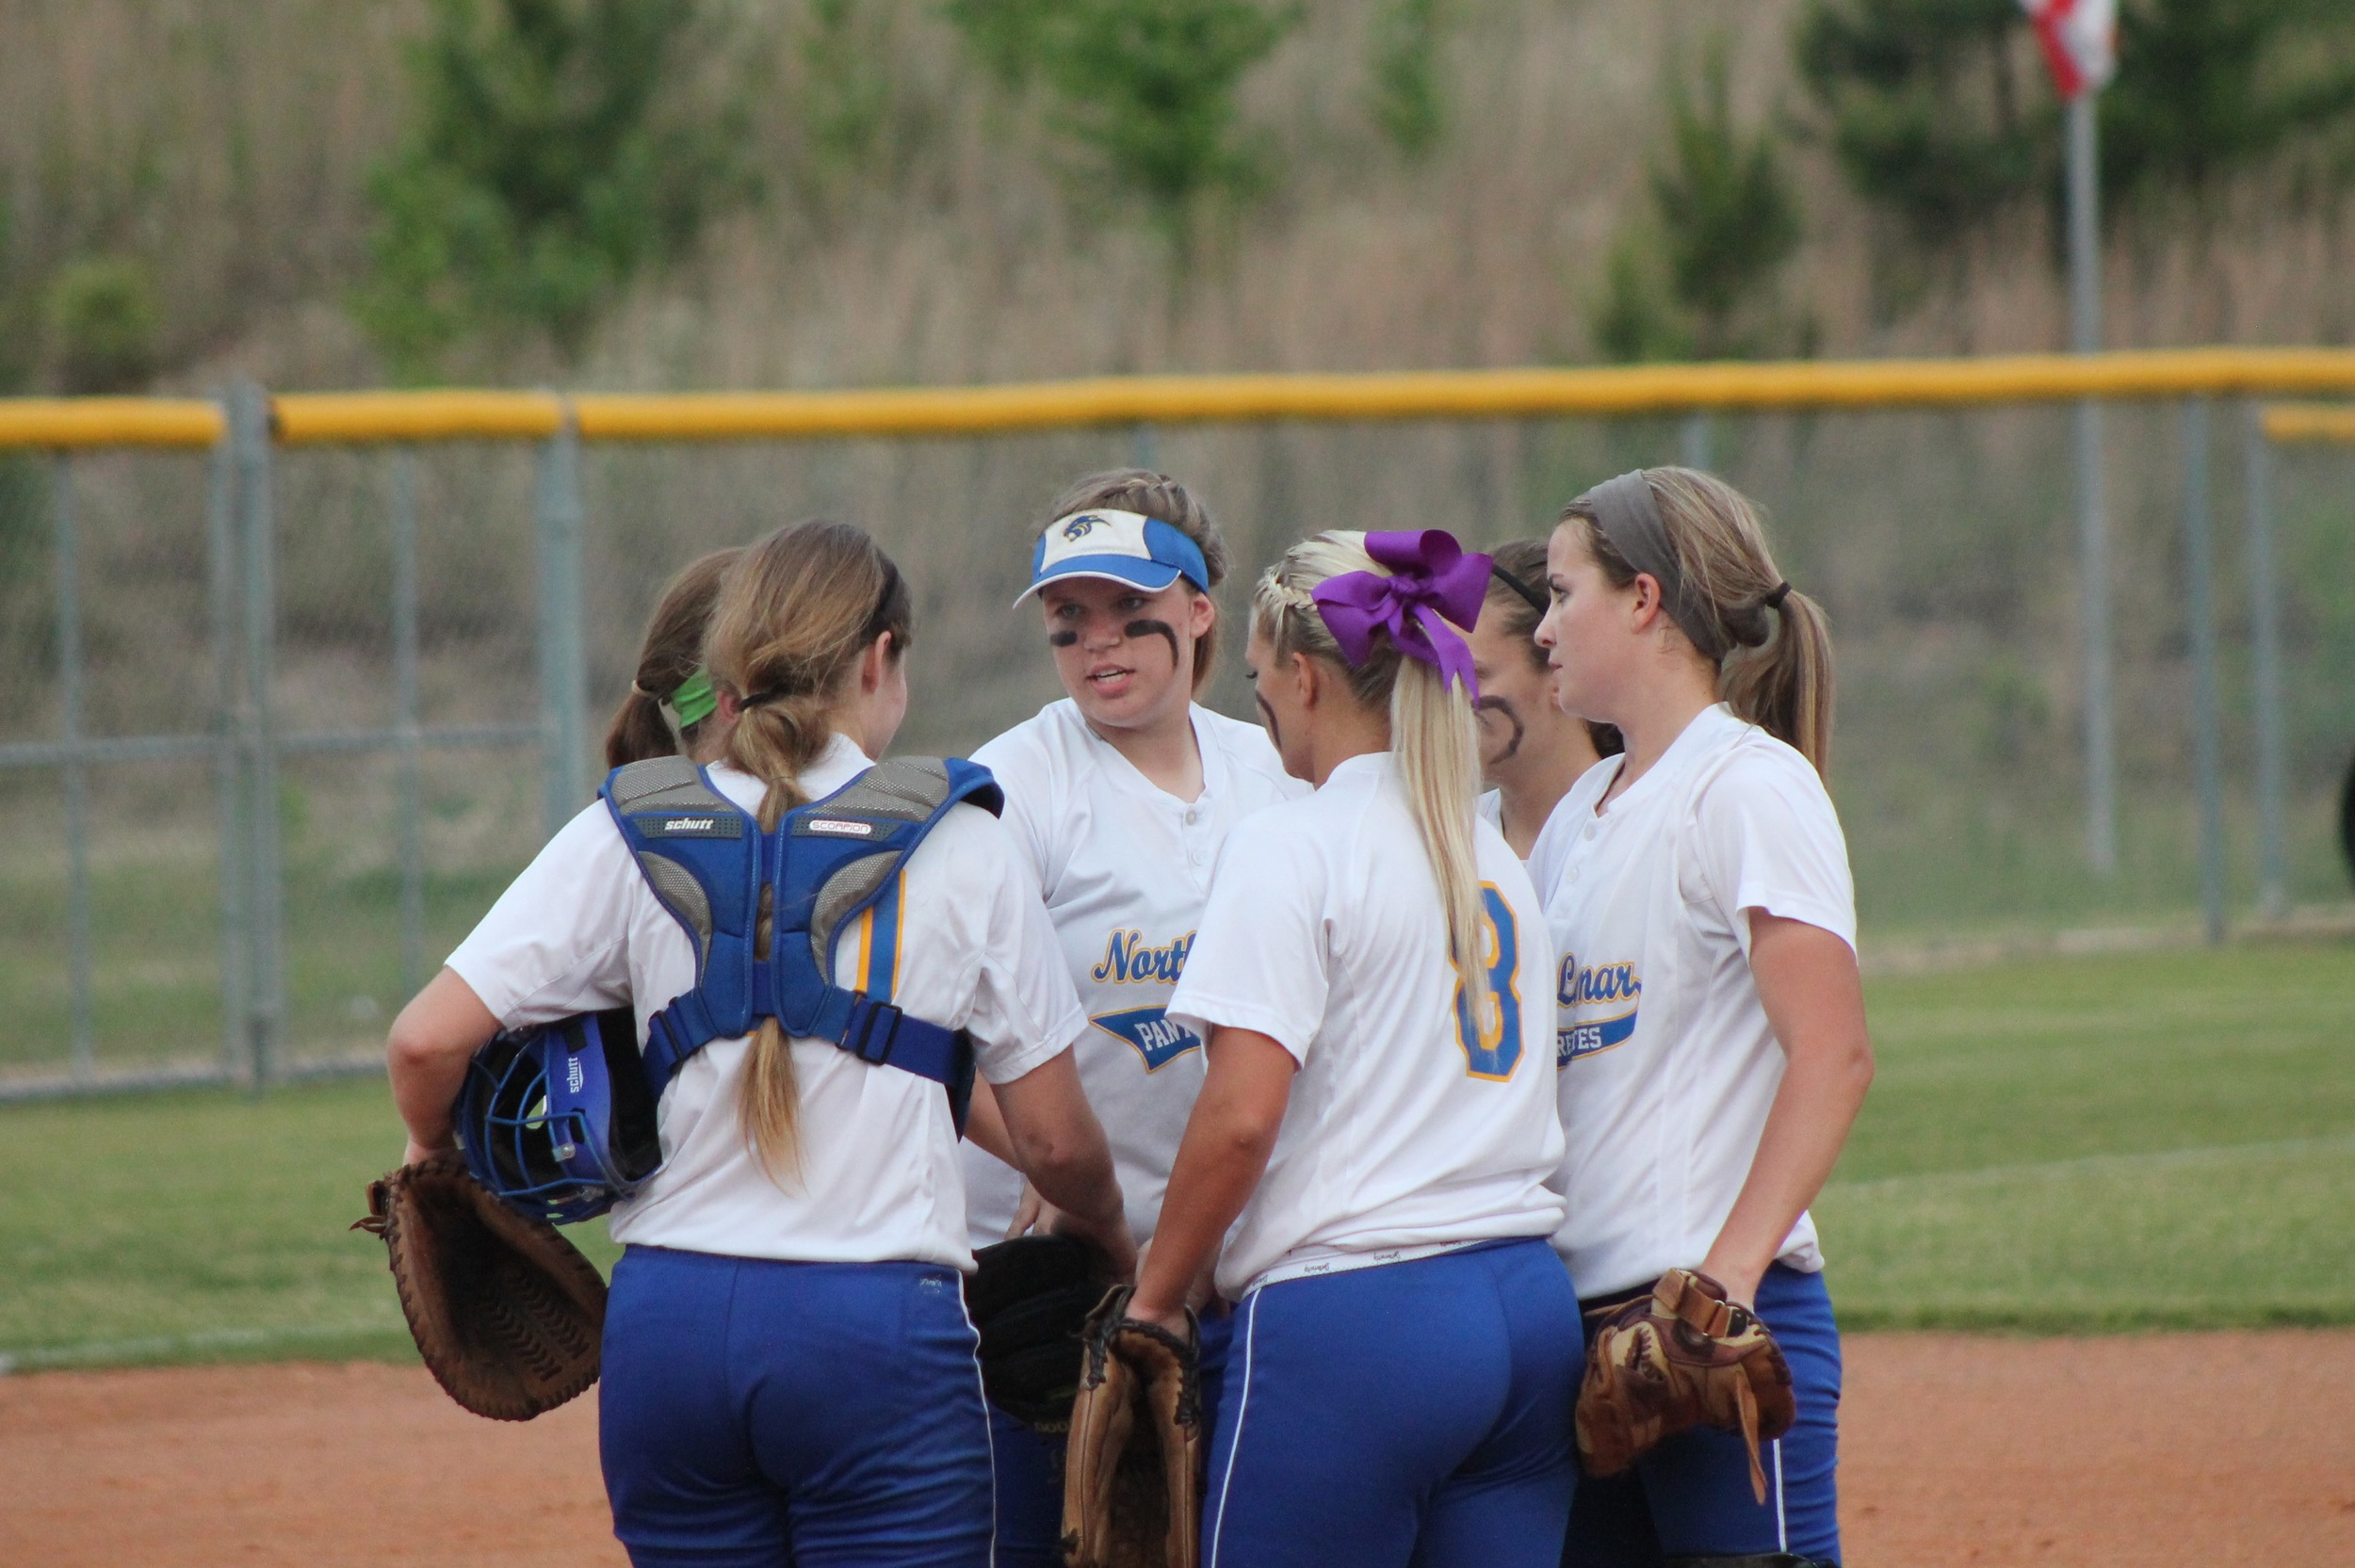 Infield meeting at the pitchers circle after Reagan struck out a batter.